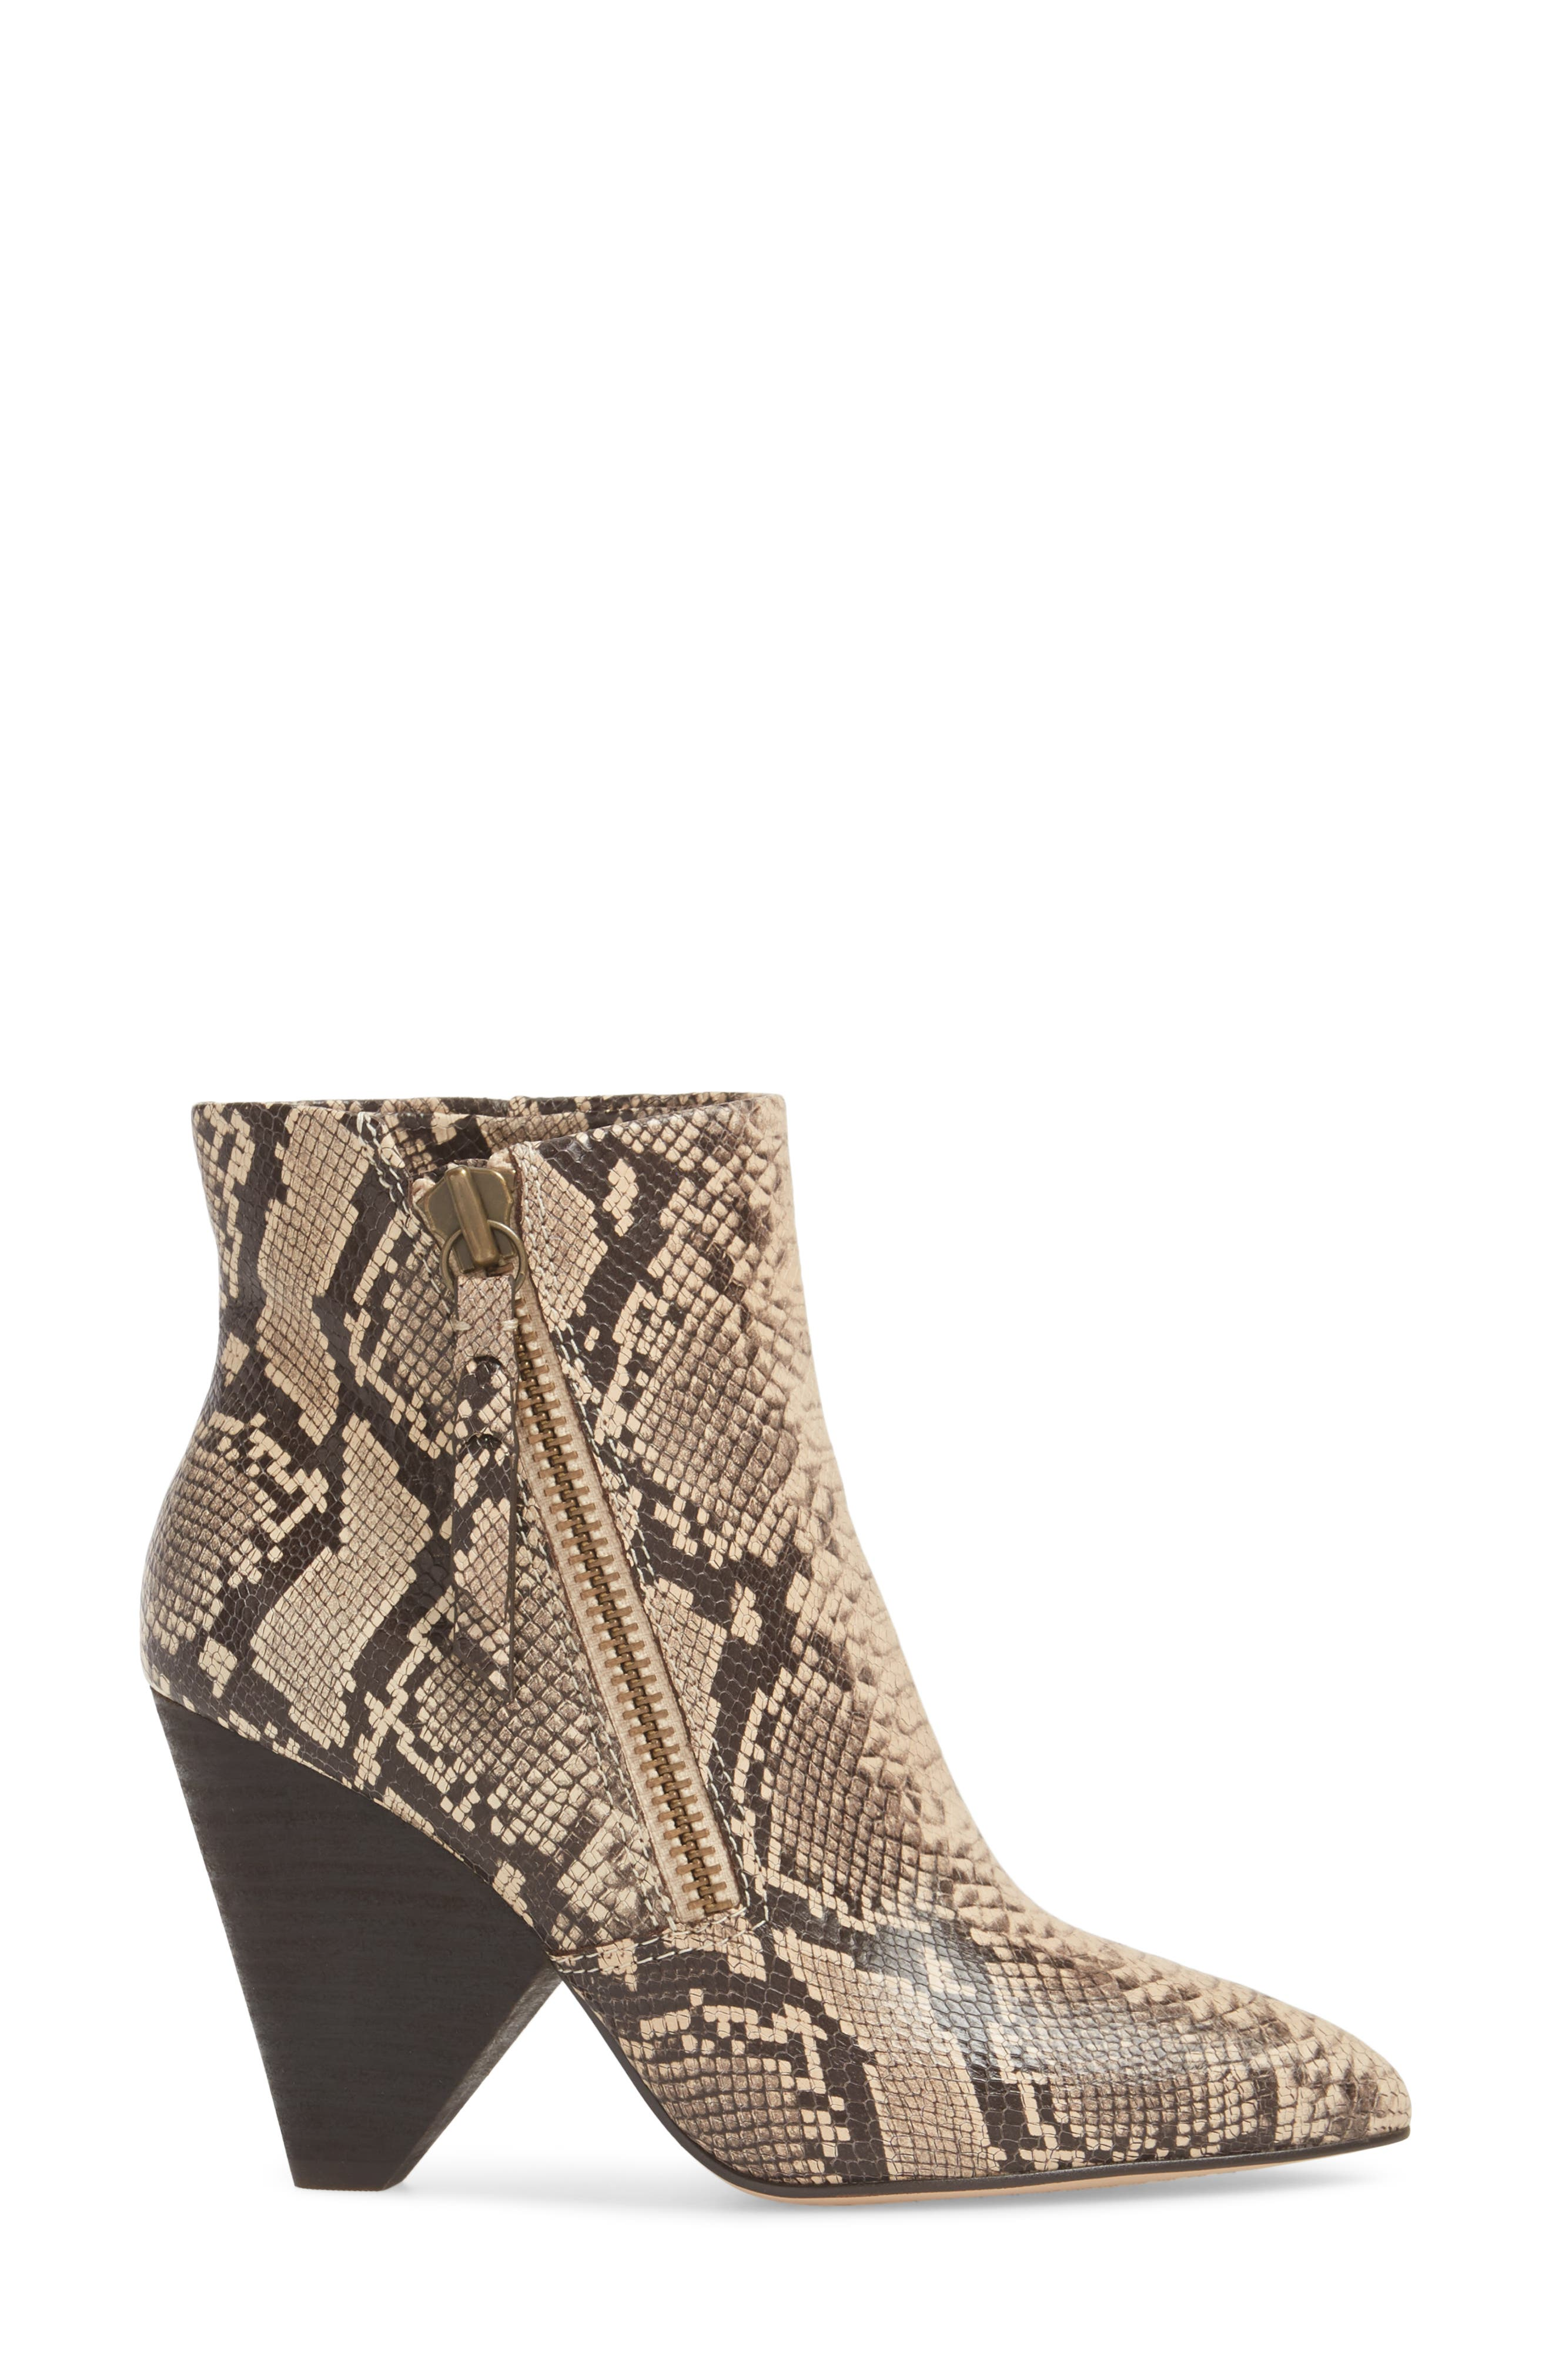 Neva II Bootie,                             Alternate thumbnail 3, color,                             NATURAL EMBOSSED SNAKE LEATHER